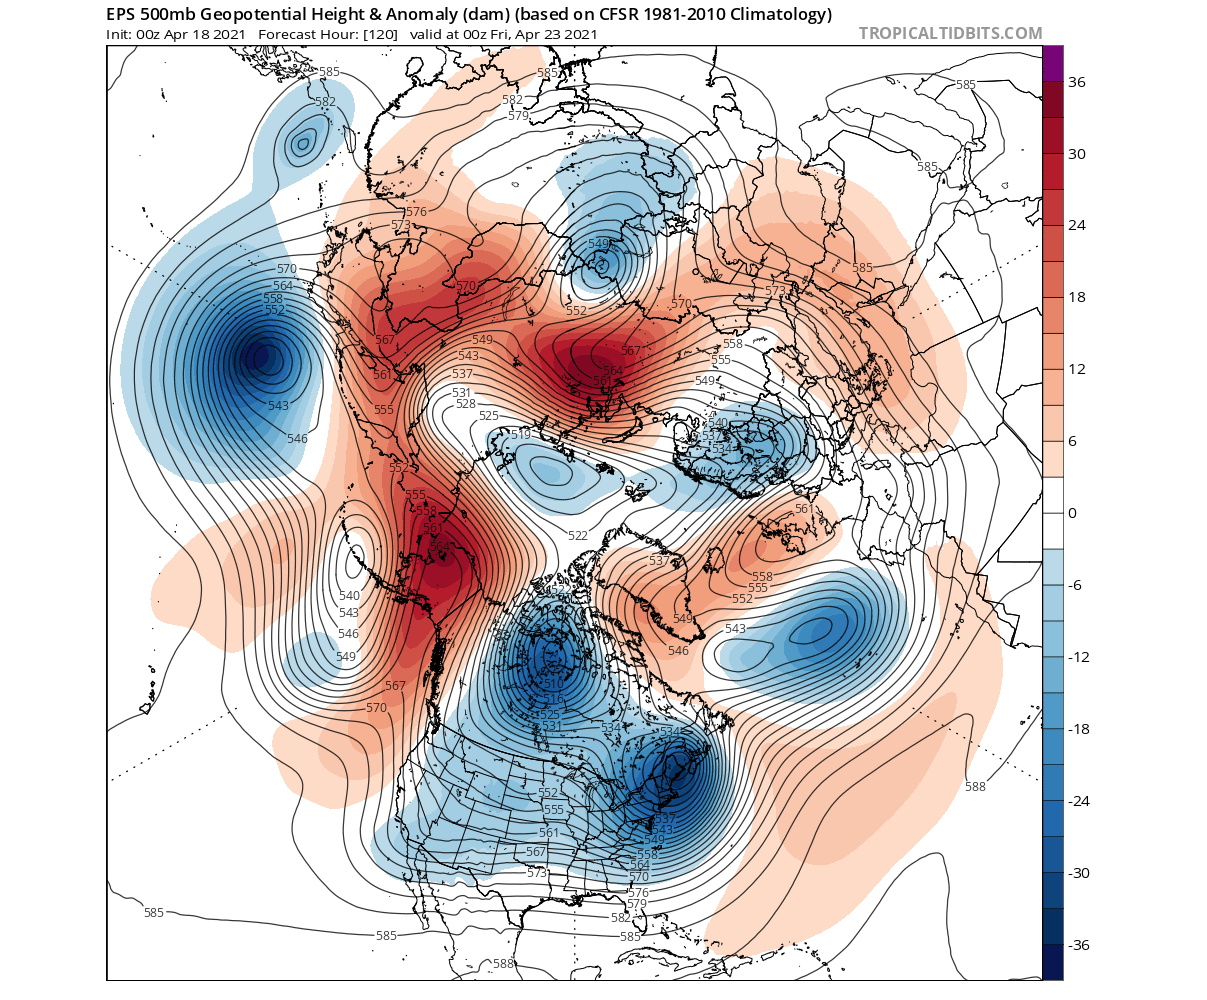 ecmwf-pressure-anomaly-weather-forecast-april-united-states-europe-arctic-day-5